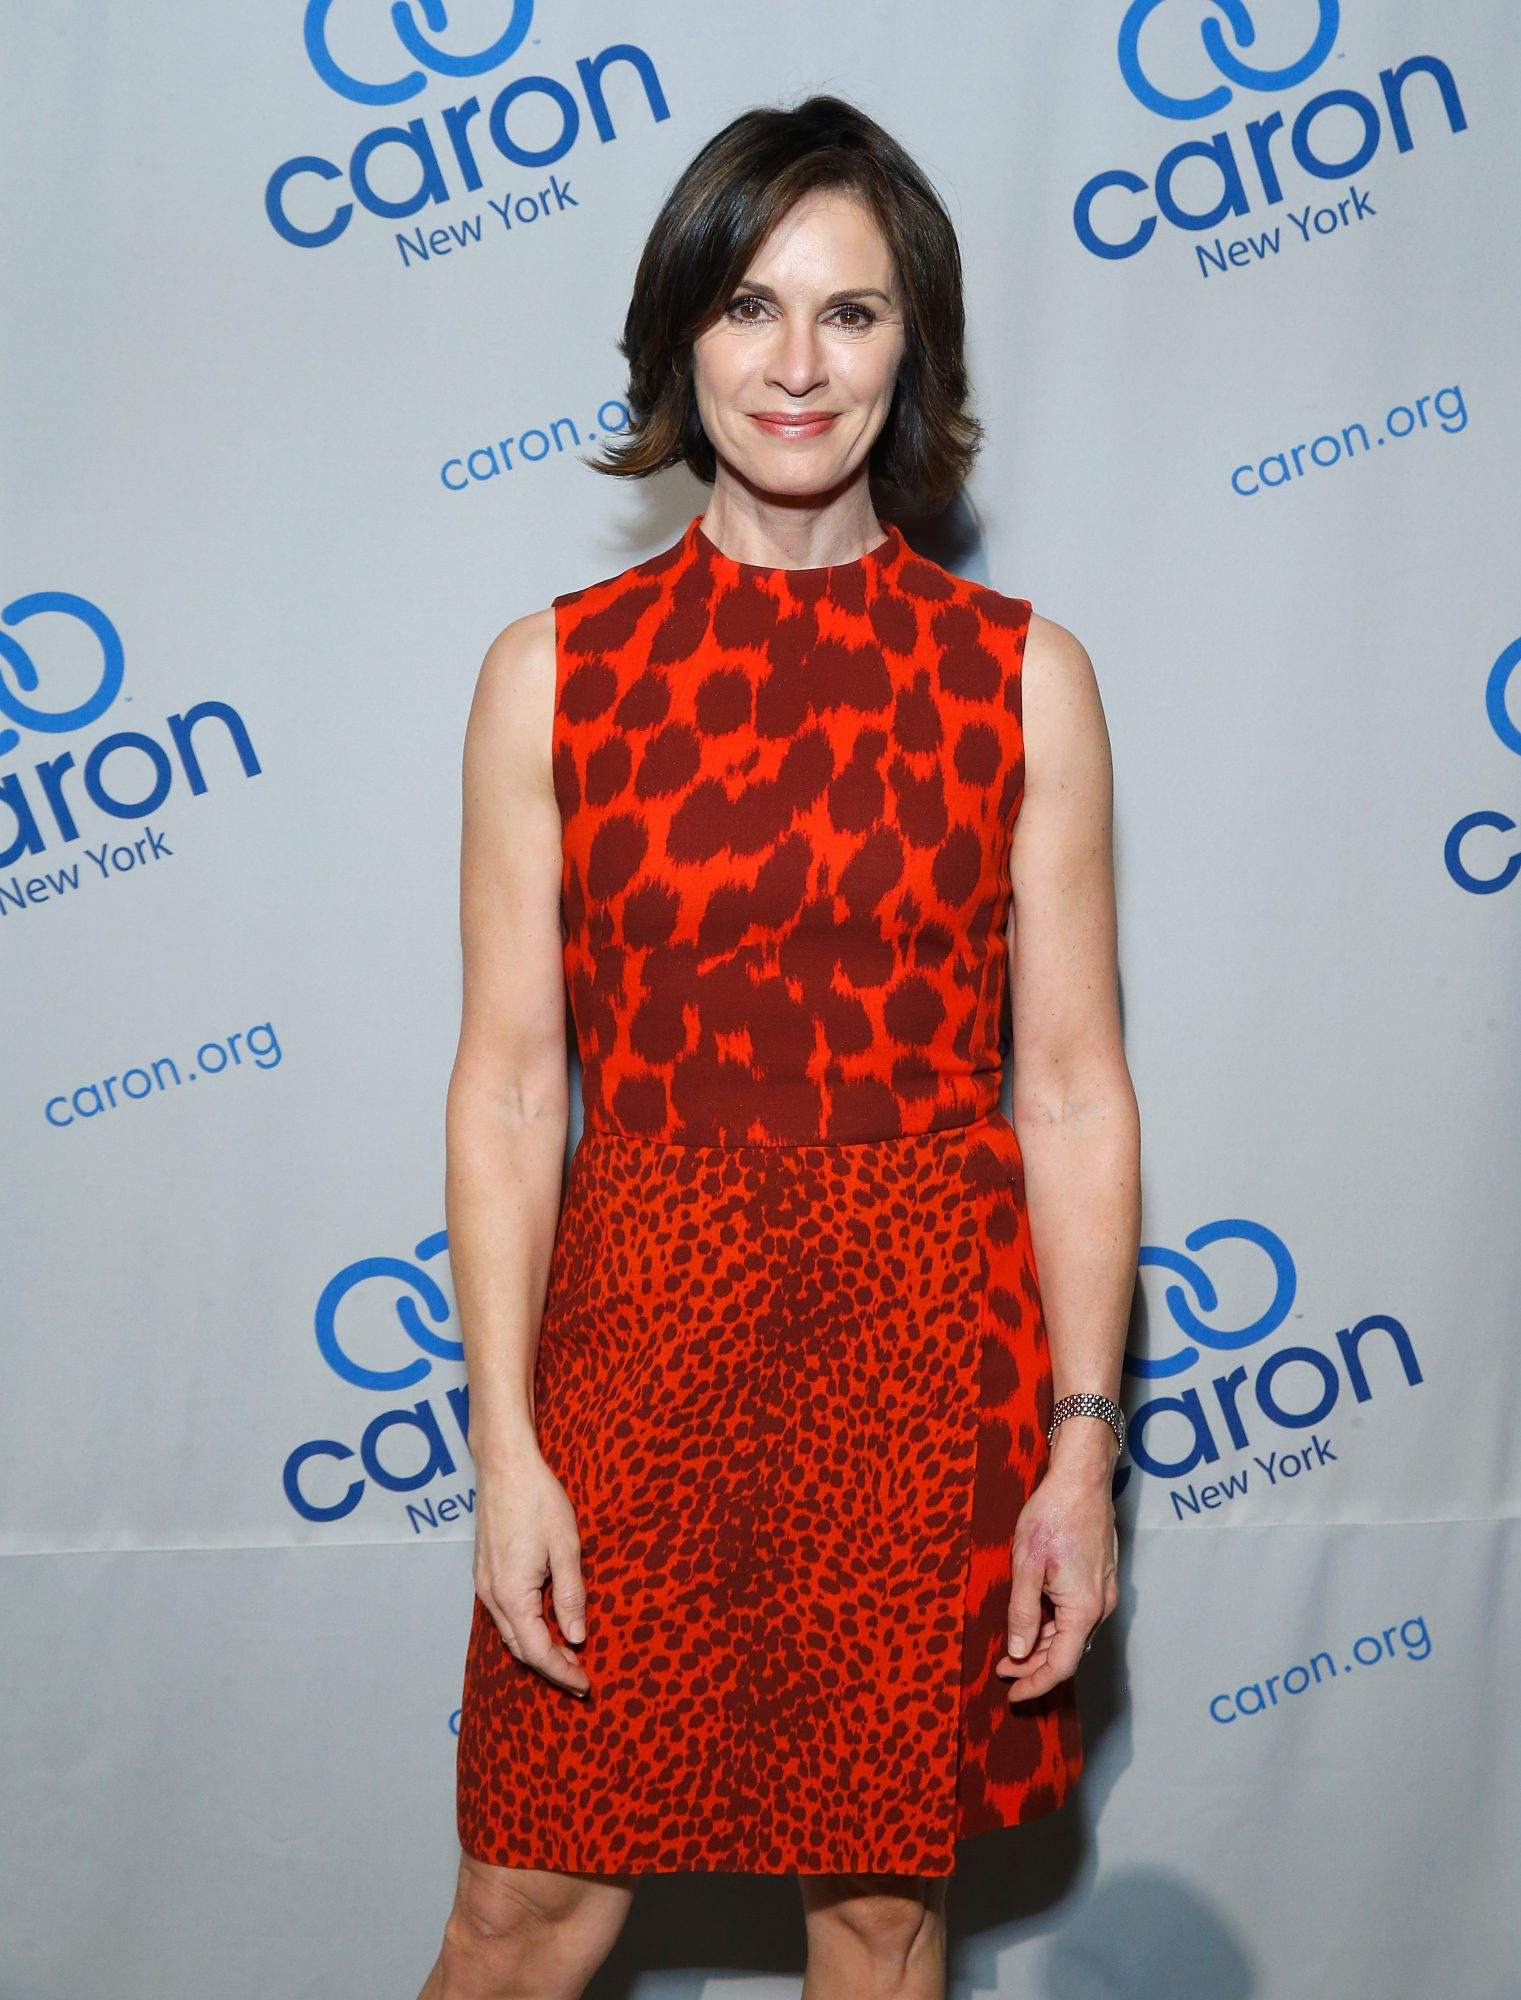 11-elizabeth-vargas-celebrity-addiction